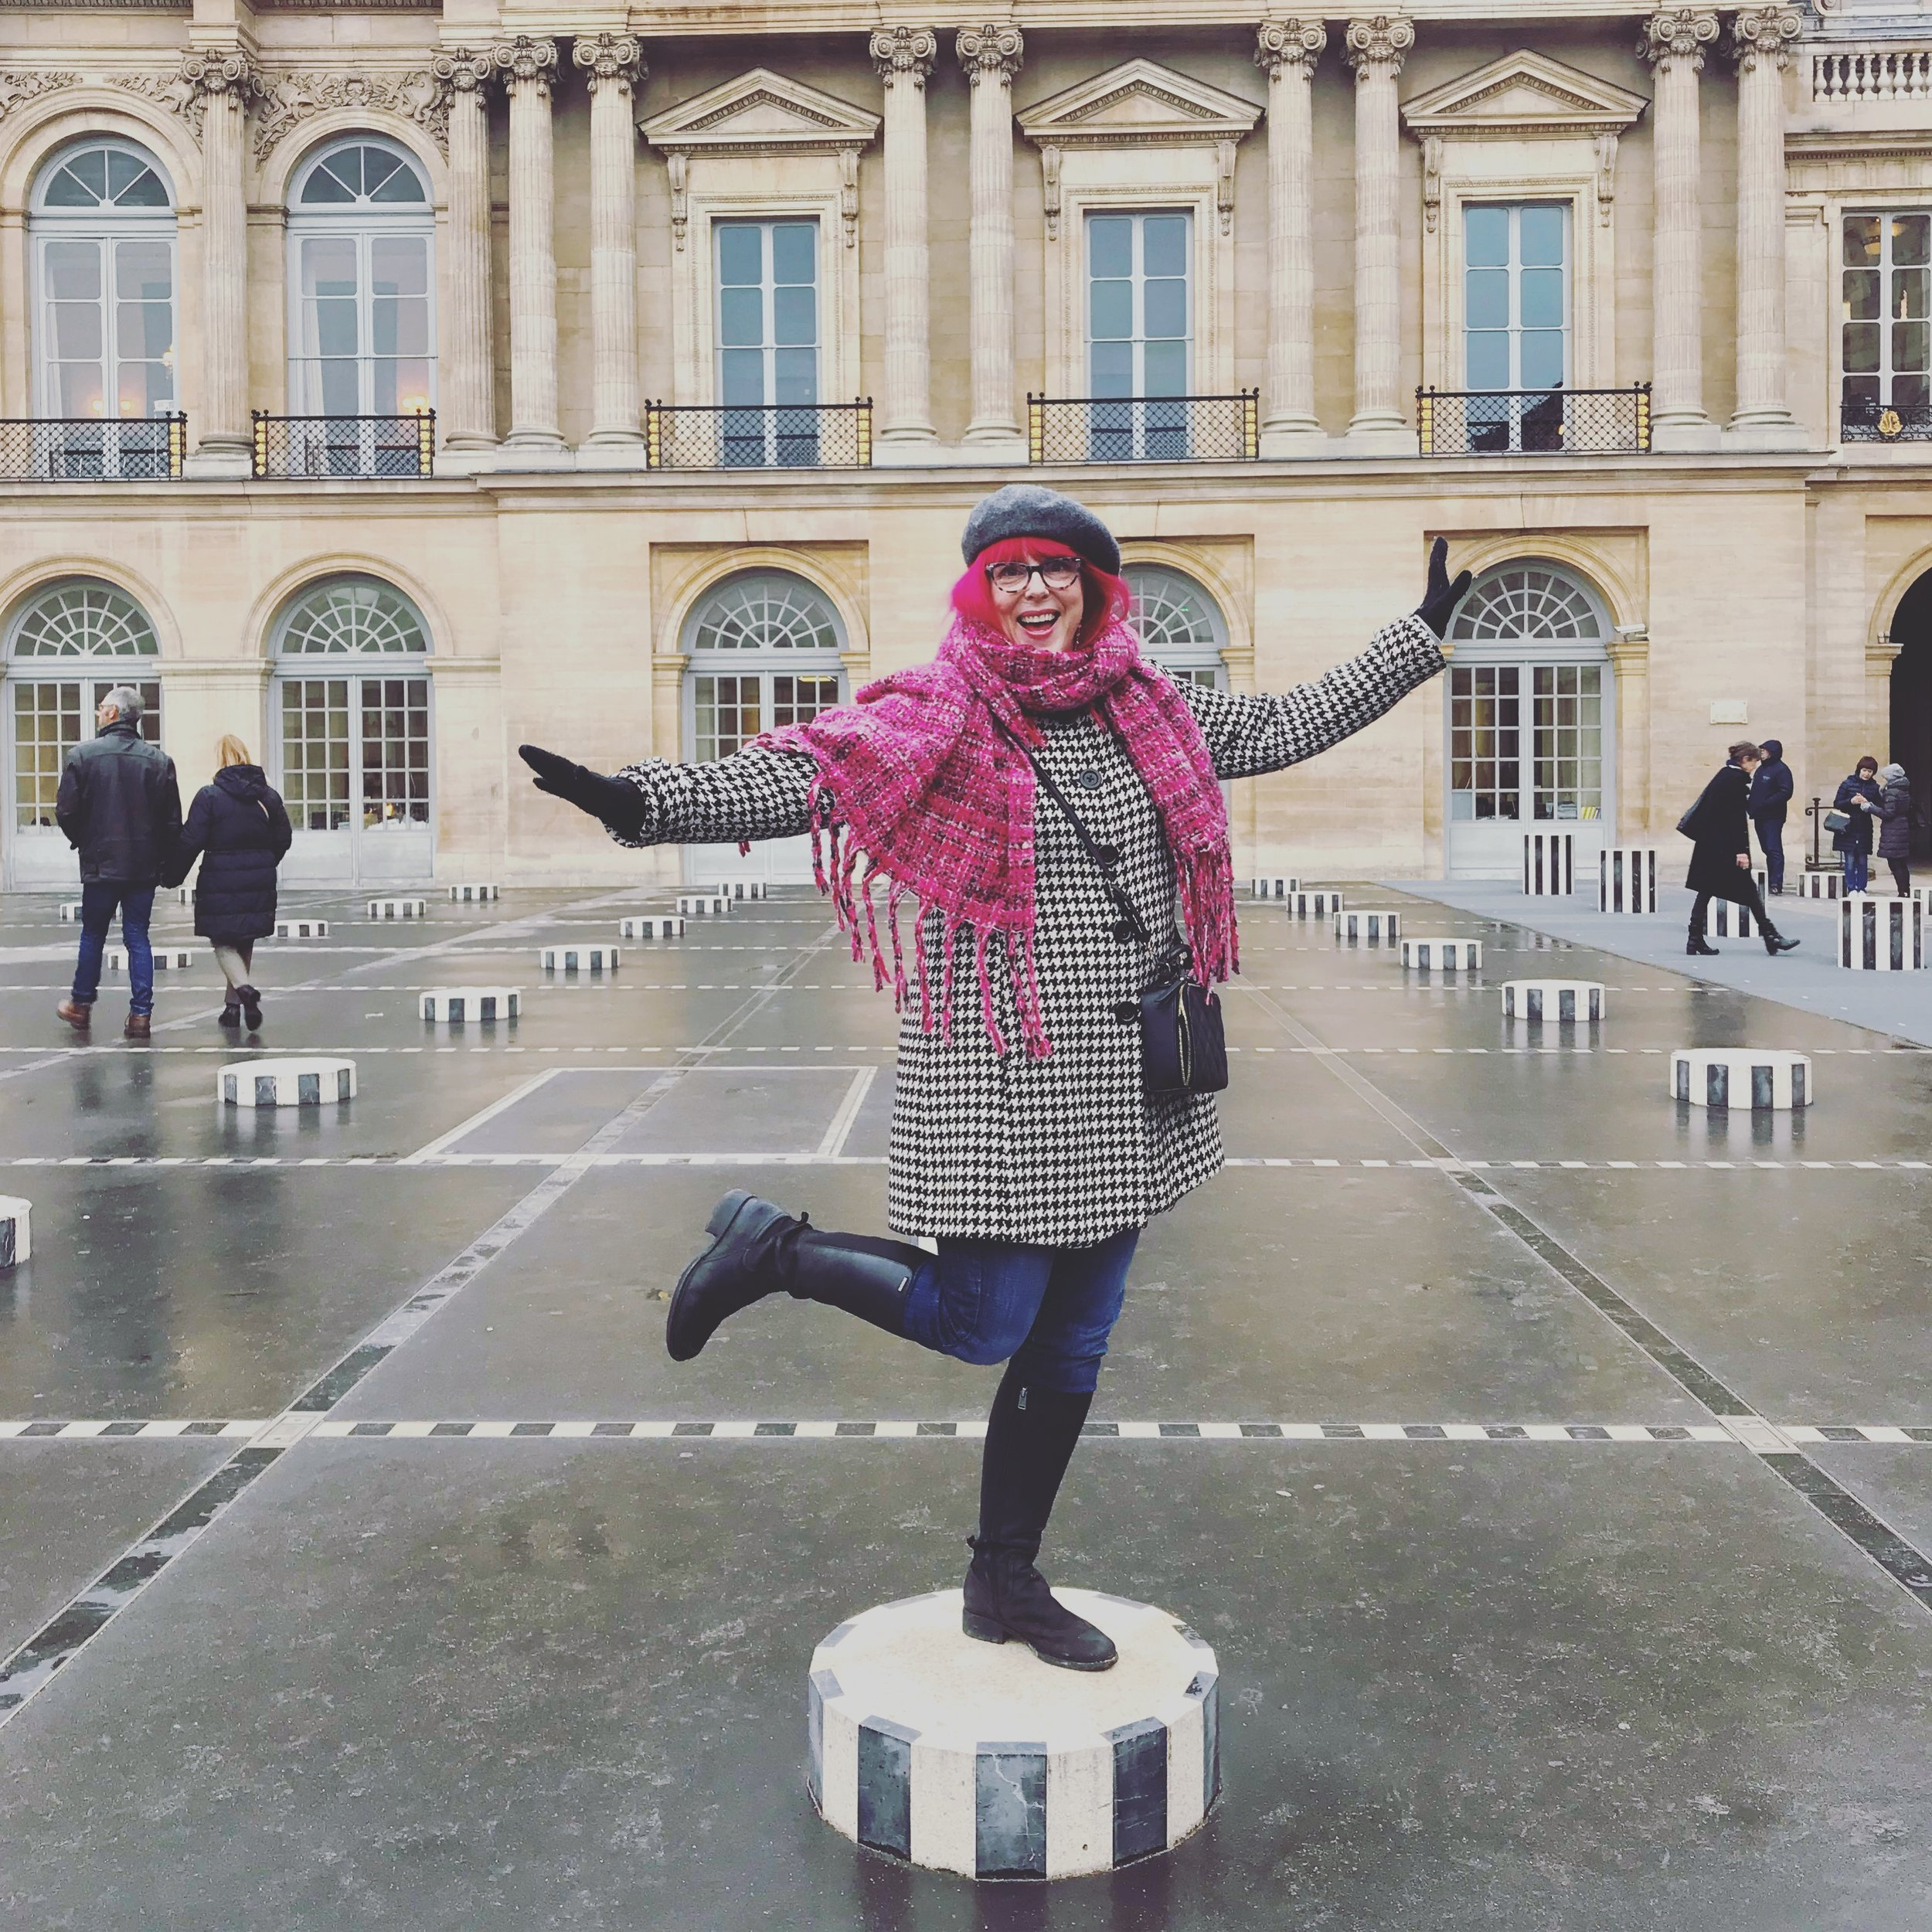 Palais-Royale, in the rain, doing my best impression of a statue.